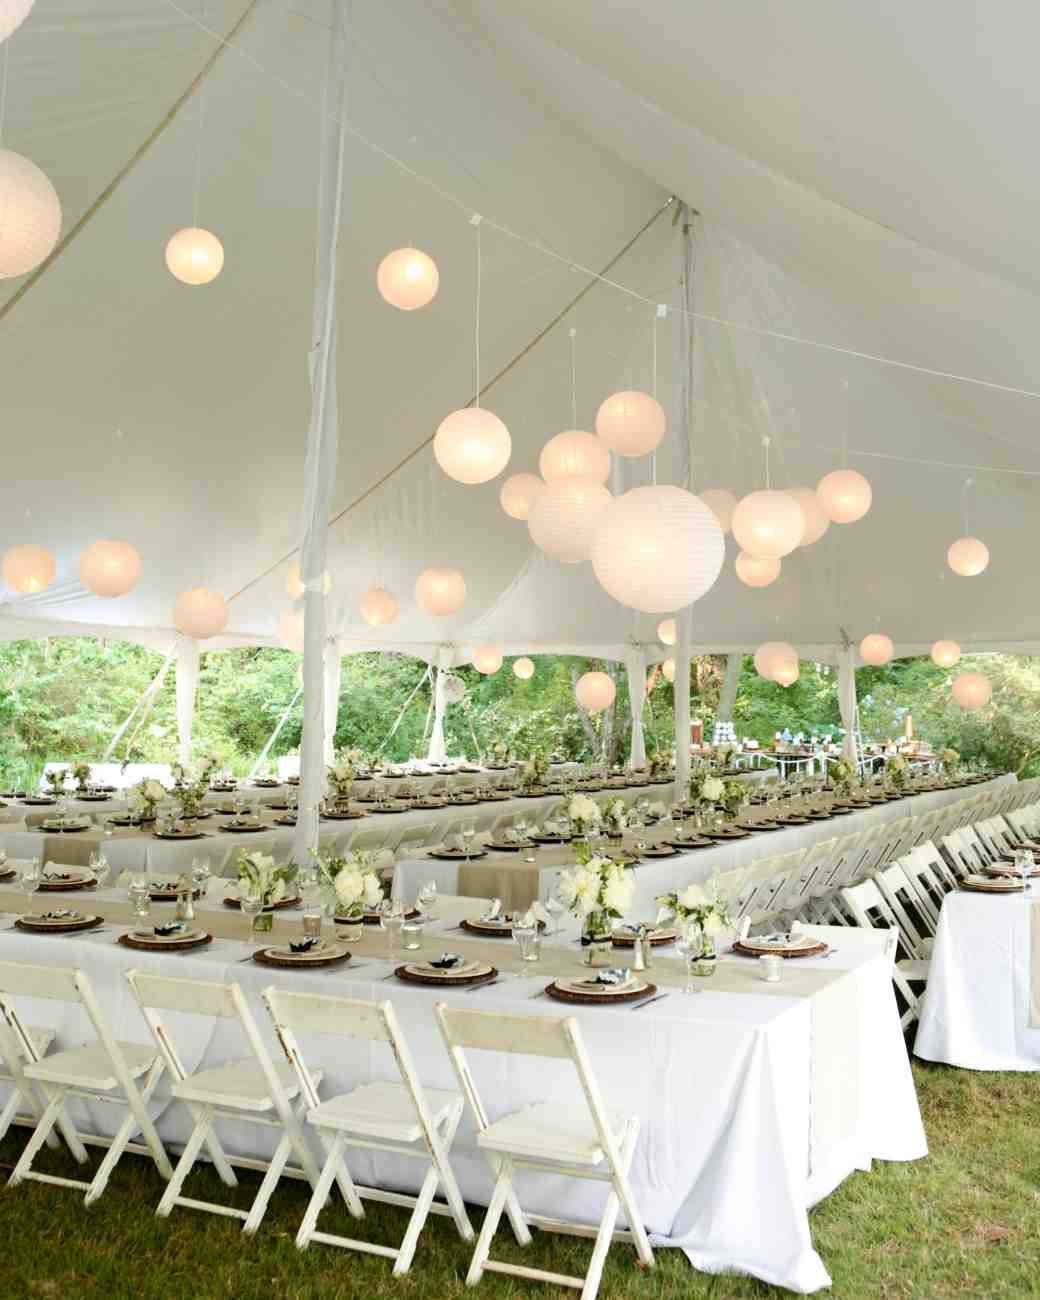 31 Tent Decorating Ideas To Raise The Roof At Your Wedding Reception Wedding Tent Decorations Tent Wedding Reception Backyard Tent Wedding